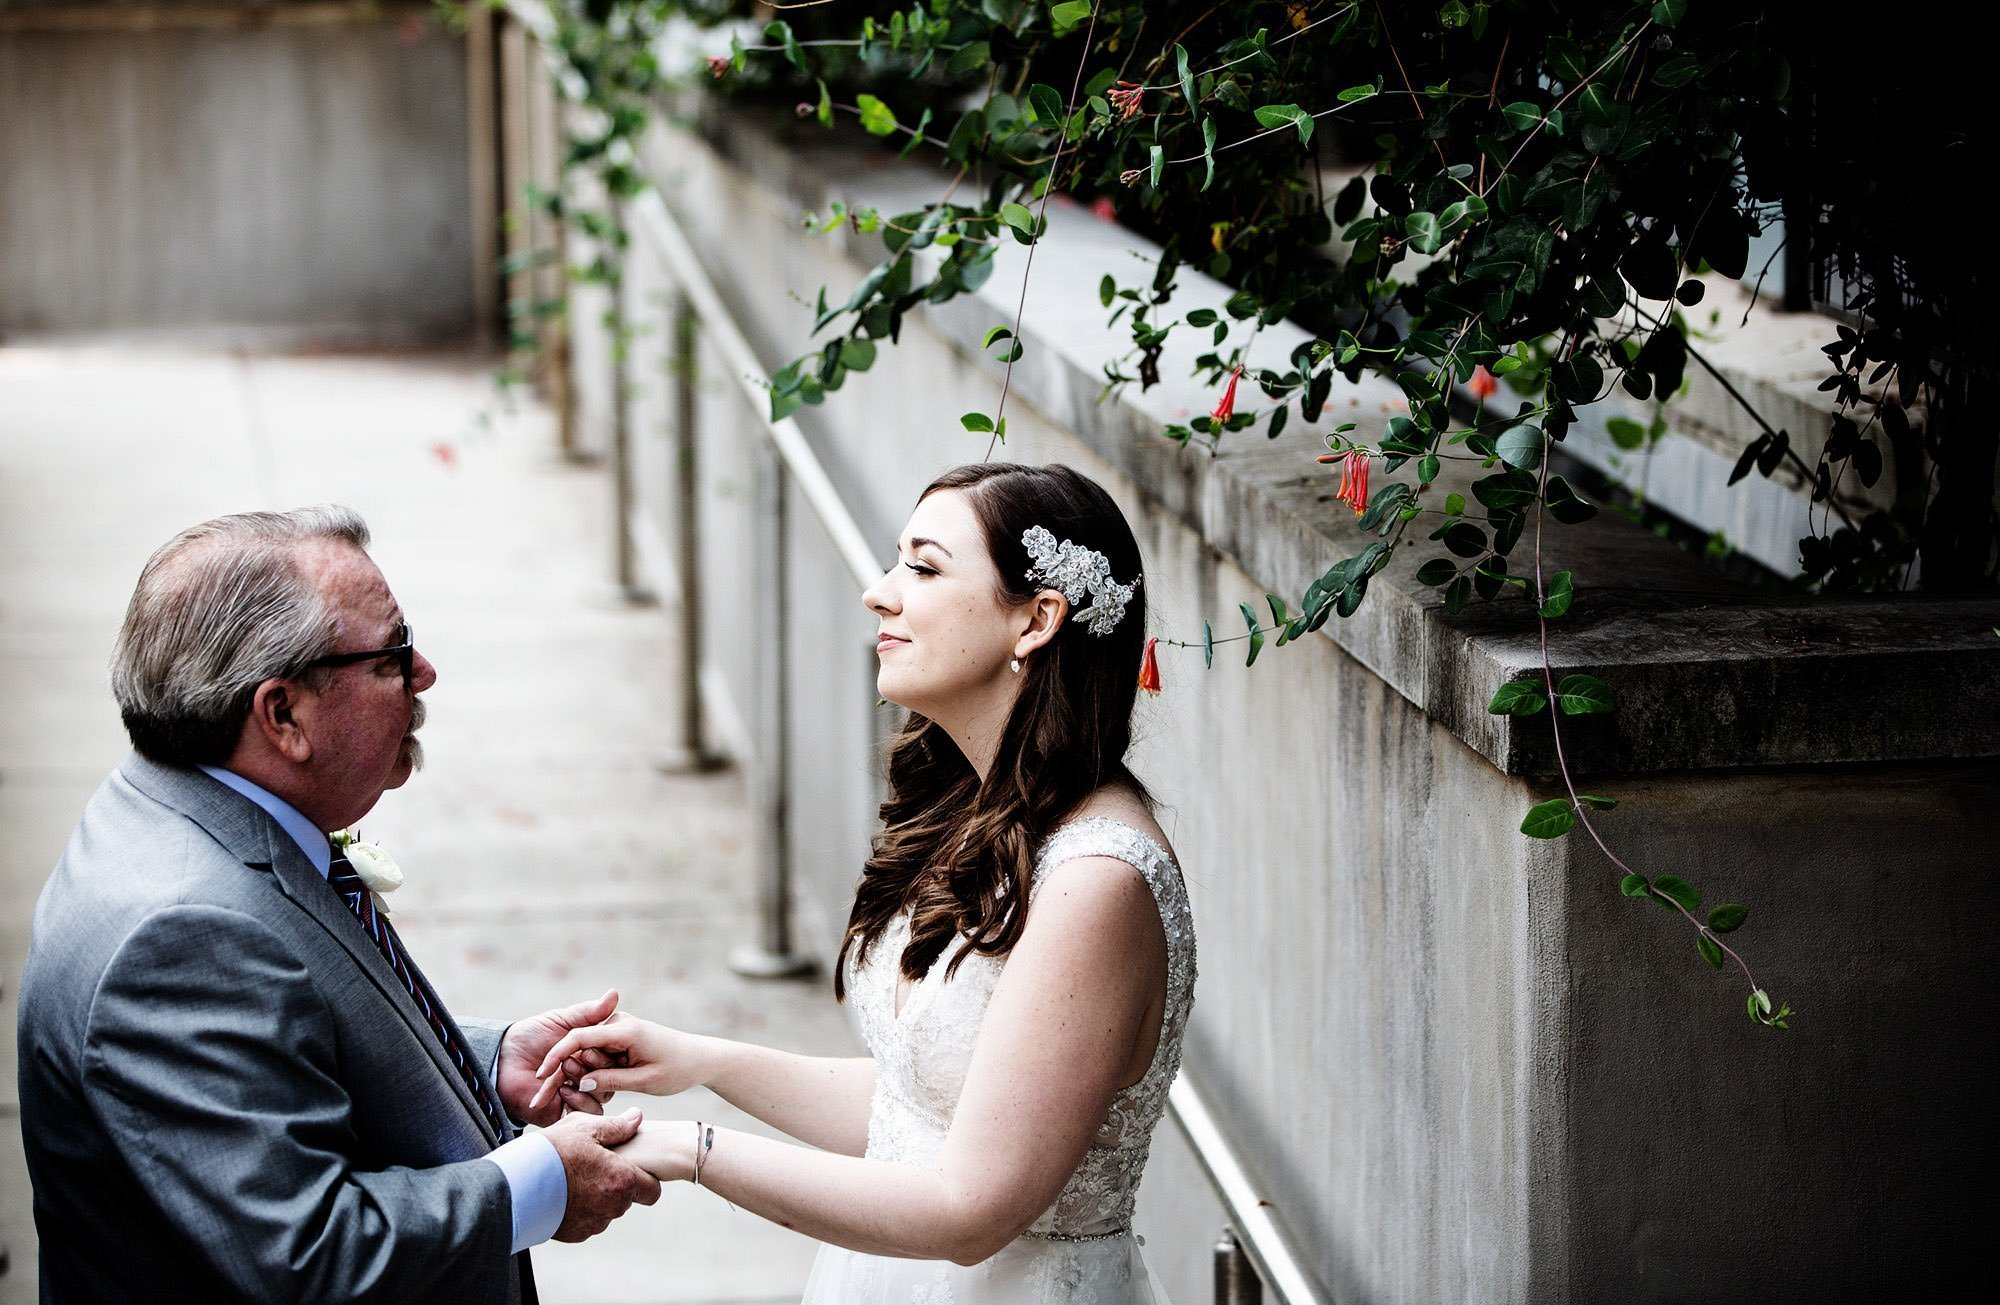 The bride shares a first look with her dad before the wedding ceremony at American Institute of Architects.